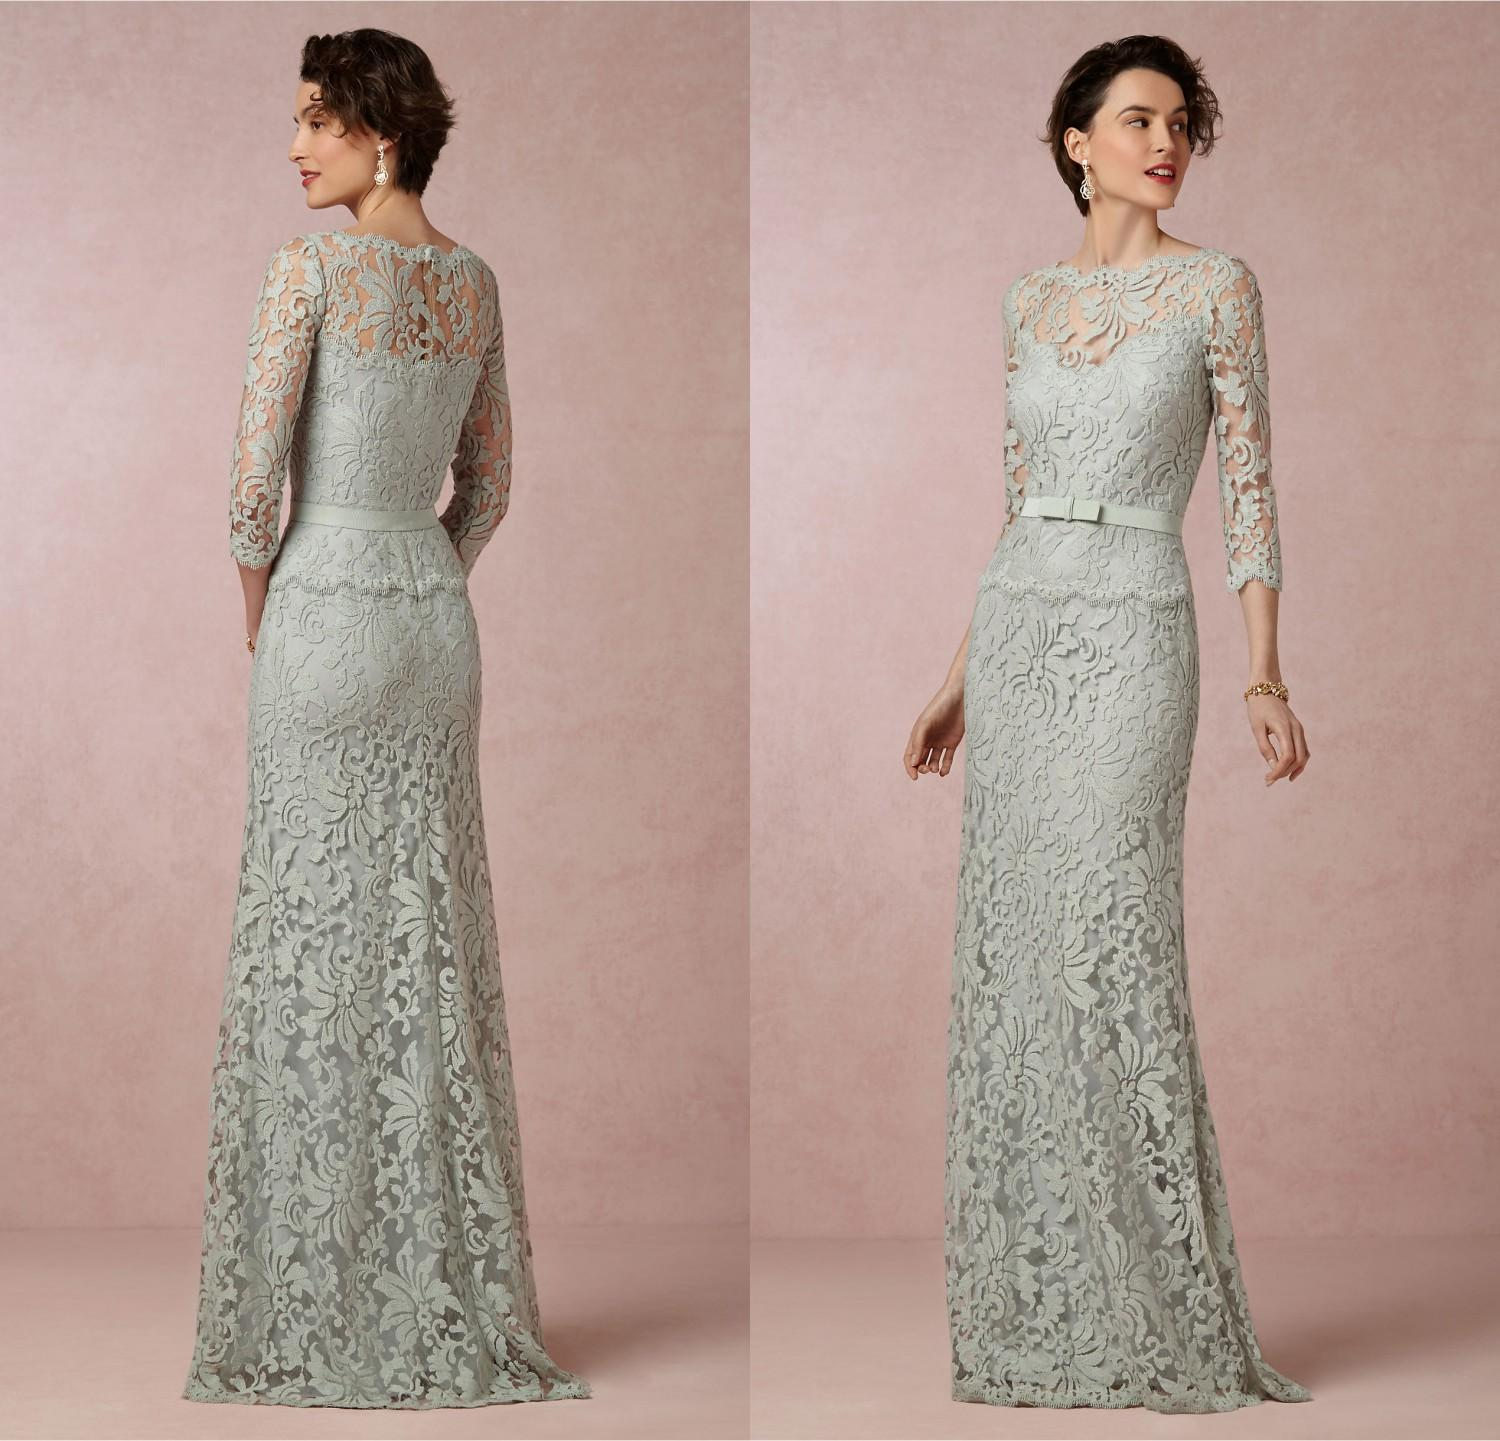 Stunning Mother Of The Bride Dresses: Most Beautiful Mother Of The Bride Lace Dresses 2015 From